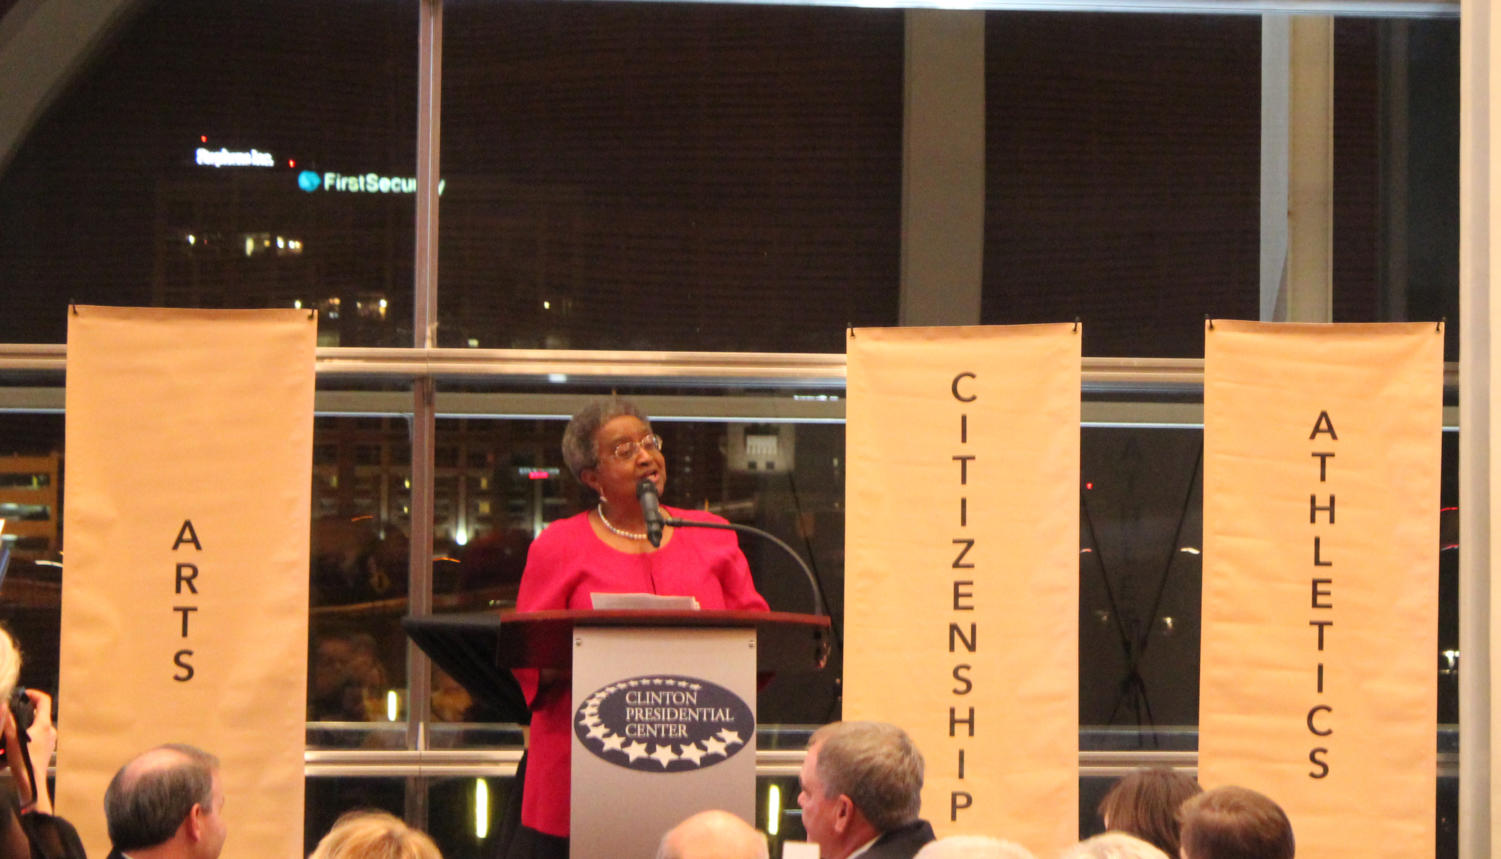 Dr. Sybill Jordan Hampton addresses the Tiger Foundation after she is honored at the Awards of Excellence Dinner on Wednesday, December 6th. Hampton was the first African American to graduate from Central after attending all 3 years of school. At one of Hampton's high school reunions, she won the award for being the most educated. (Photo by Fran Delacey)